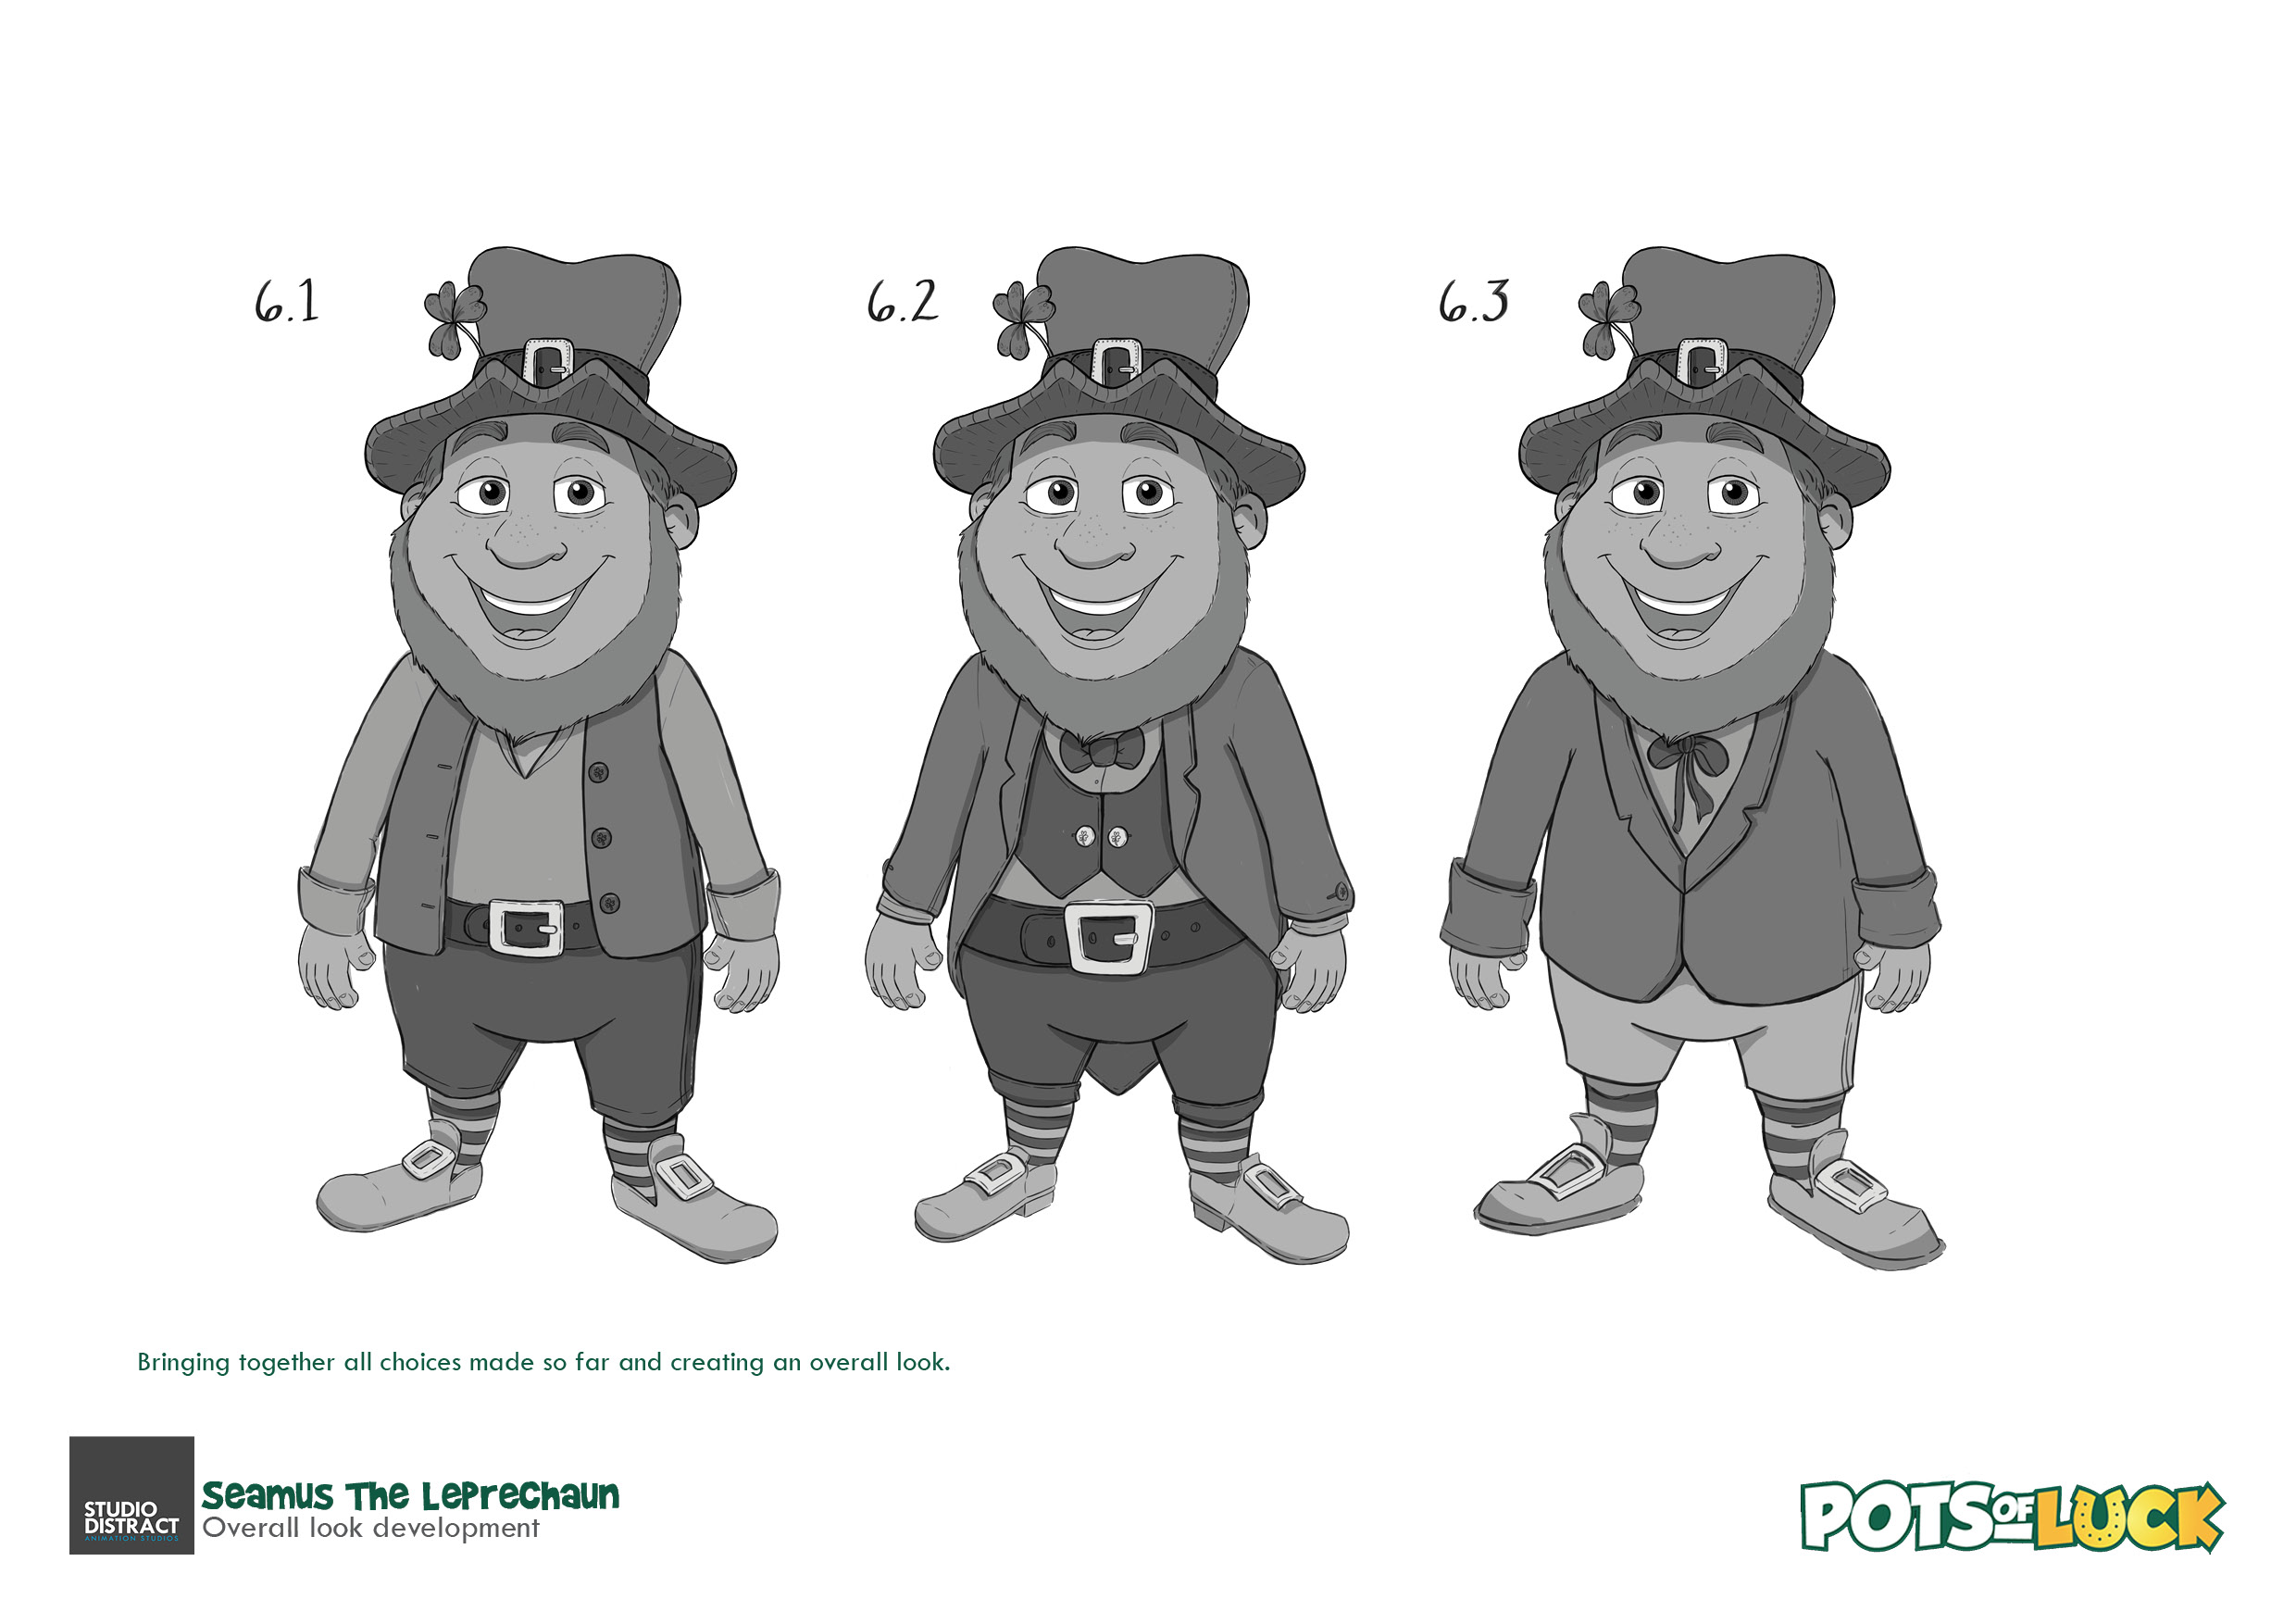 Pots of Luck Character Design